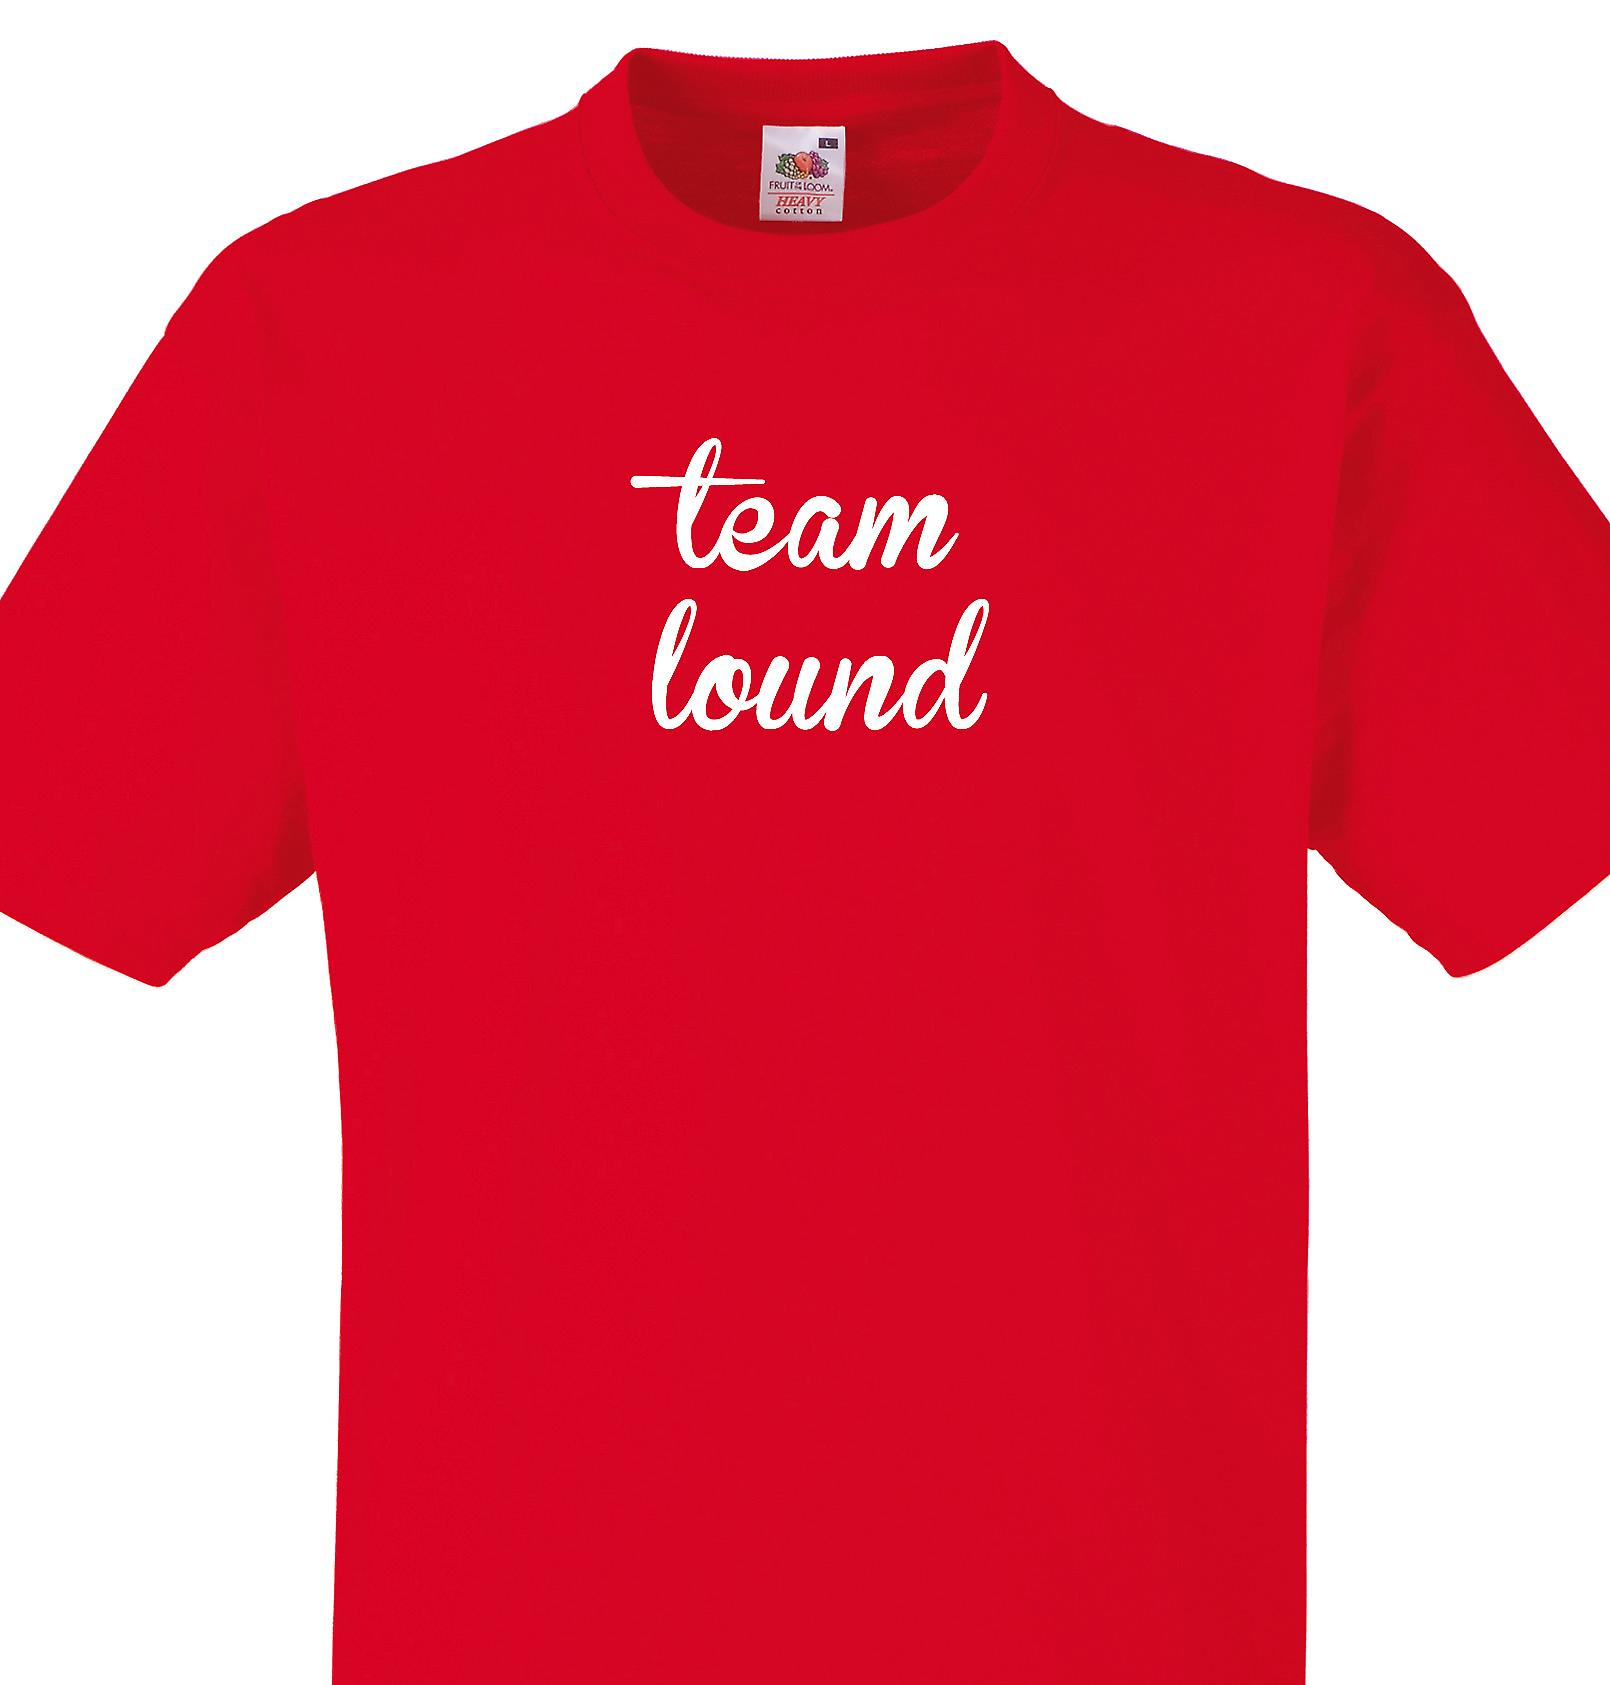 Team Lound Red T shirt